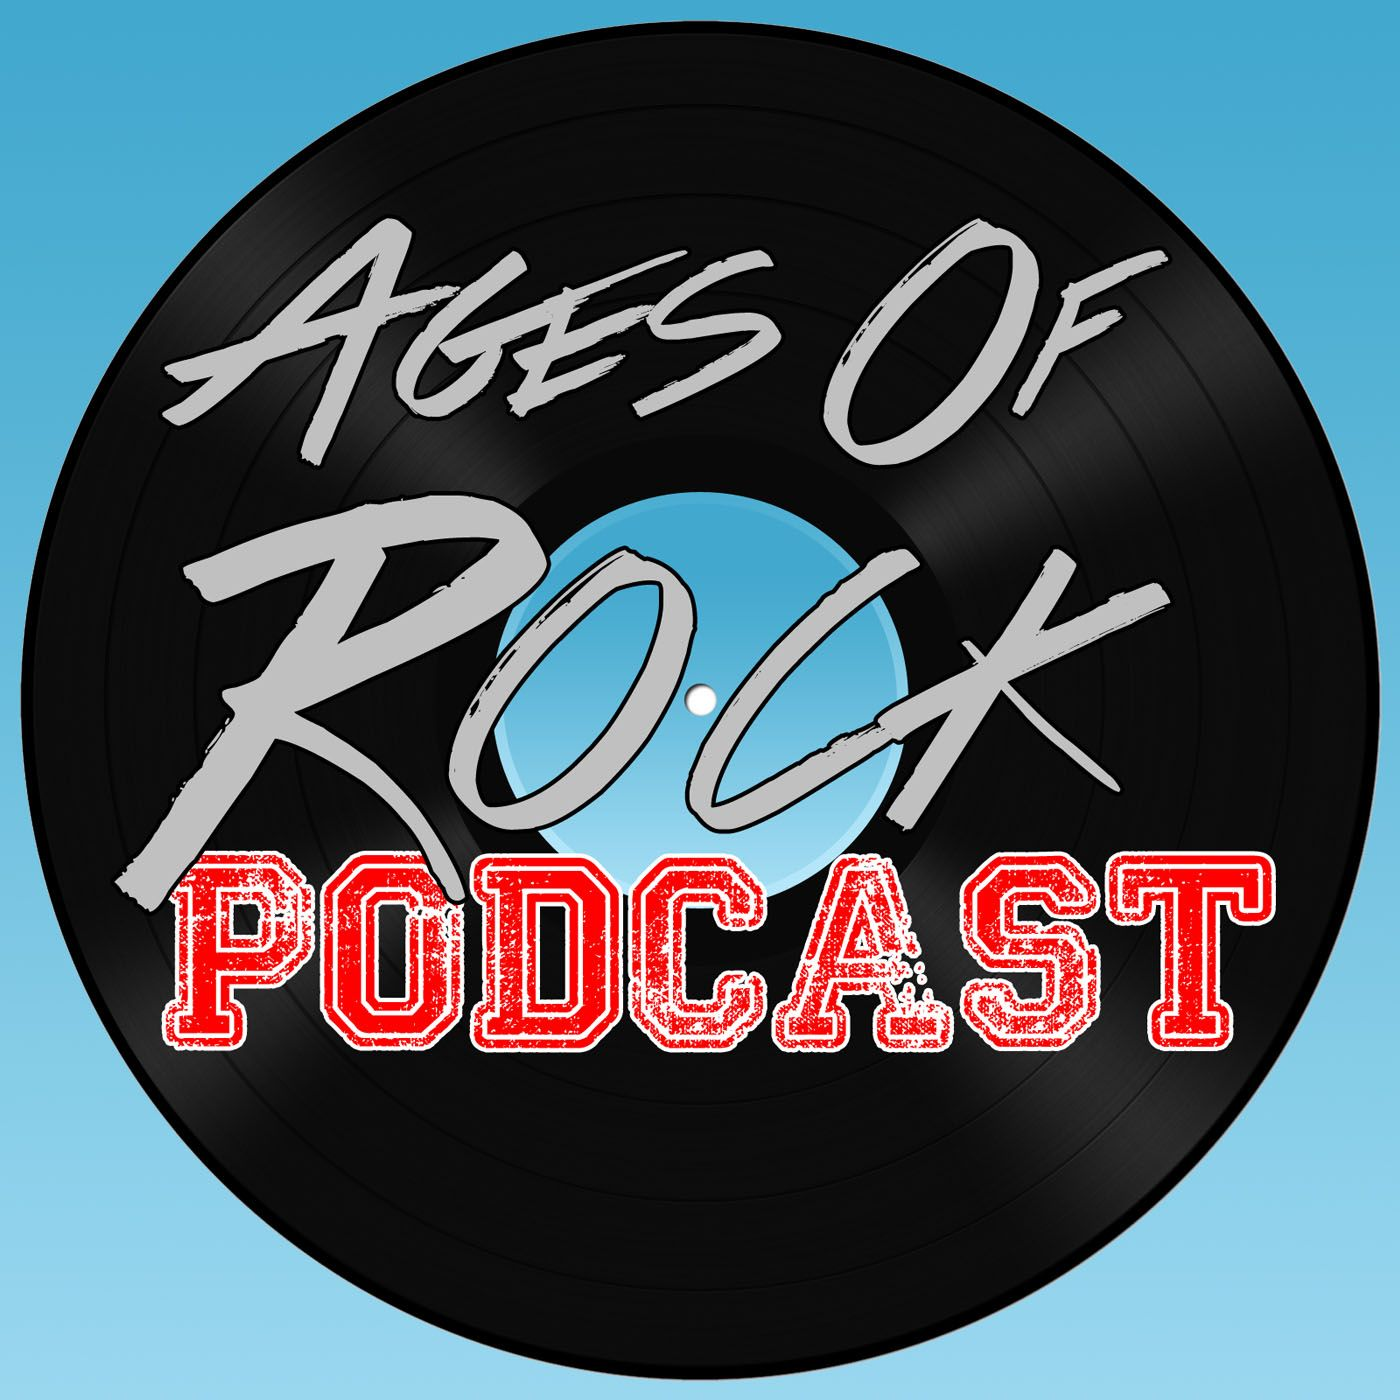 Episode 077 - Our Top 5 Songs From The Big 3 Ozzy Osbourne Guitarists Featuring Steven Michael